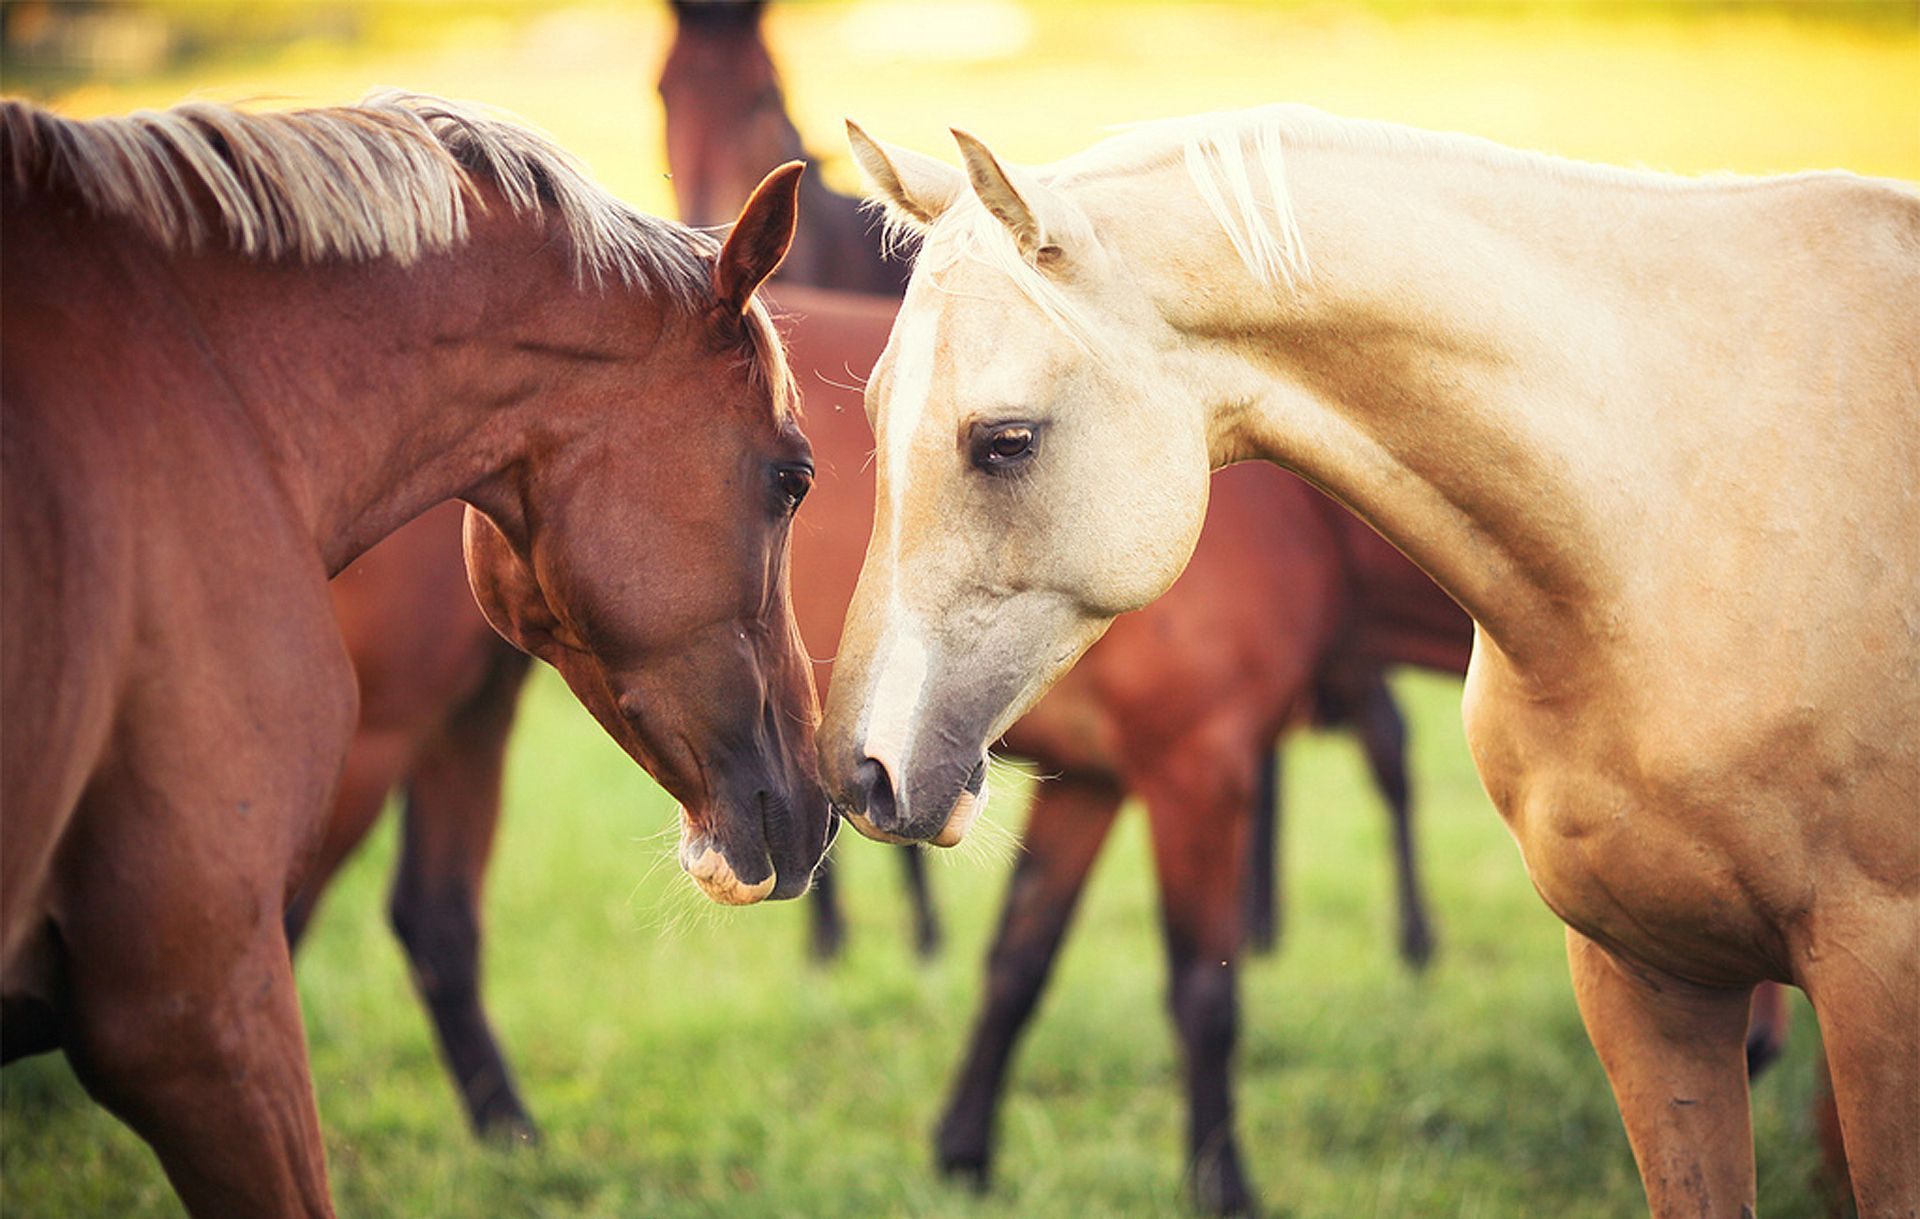 Cool Wallpaper Horse Couple - 60f5a506aebd75c397e5b702a884b2aa  Photograph_14367.jpg